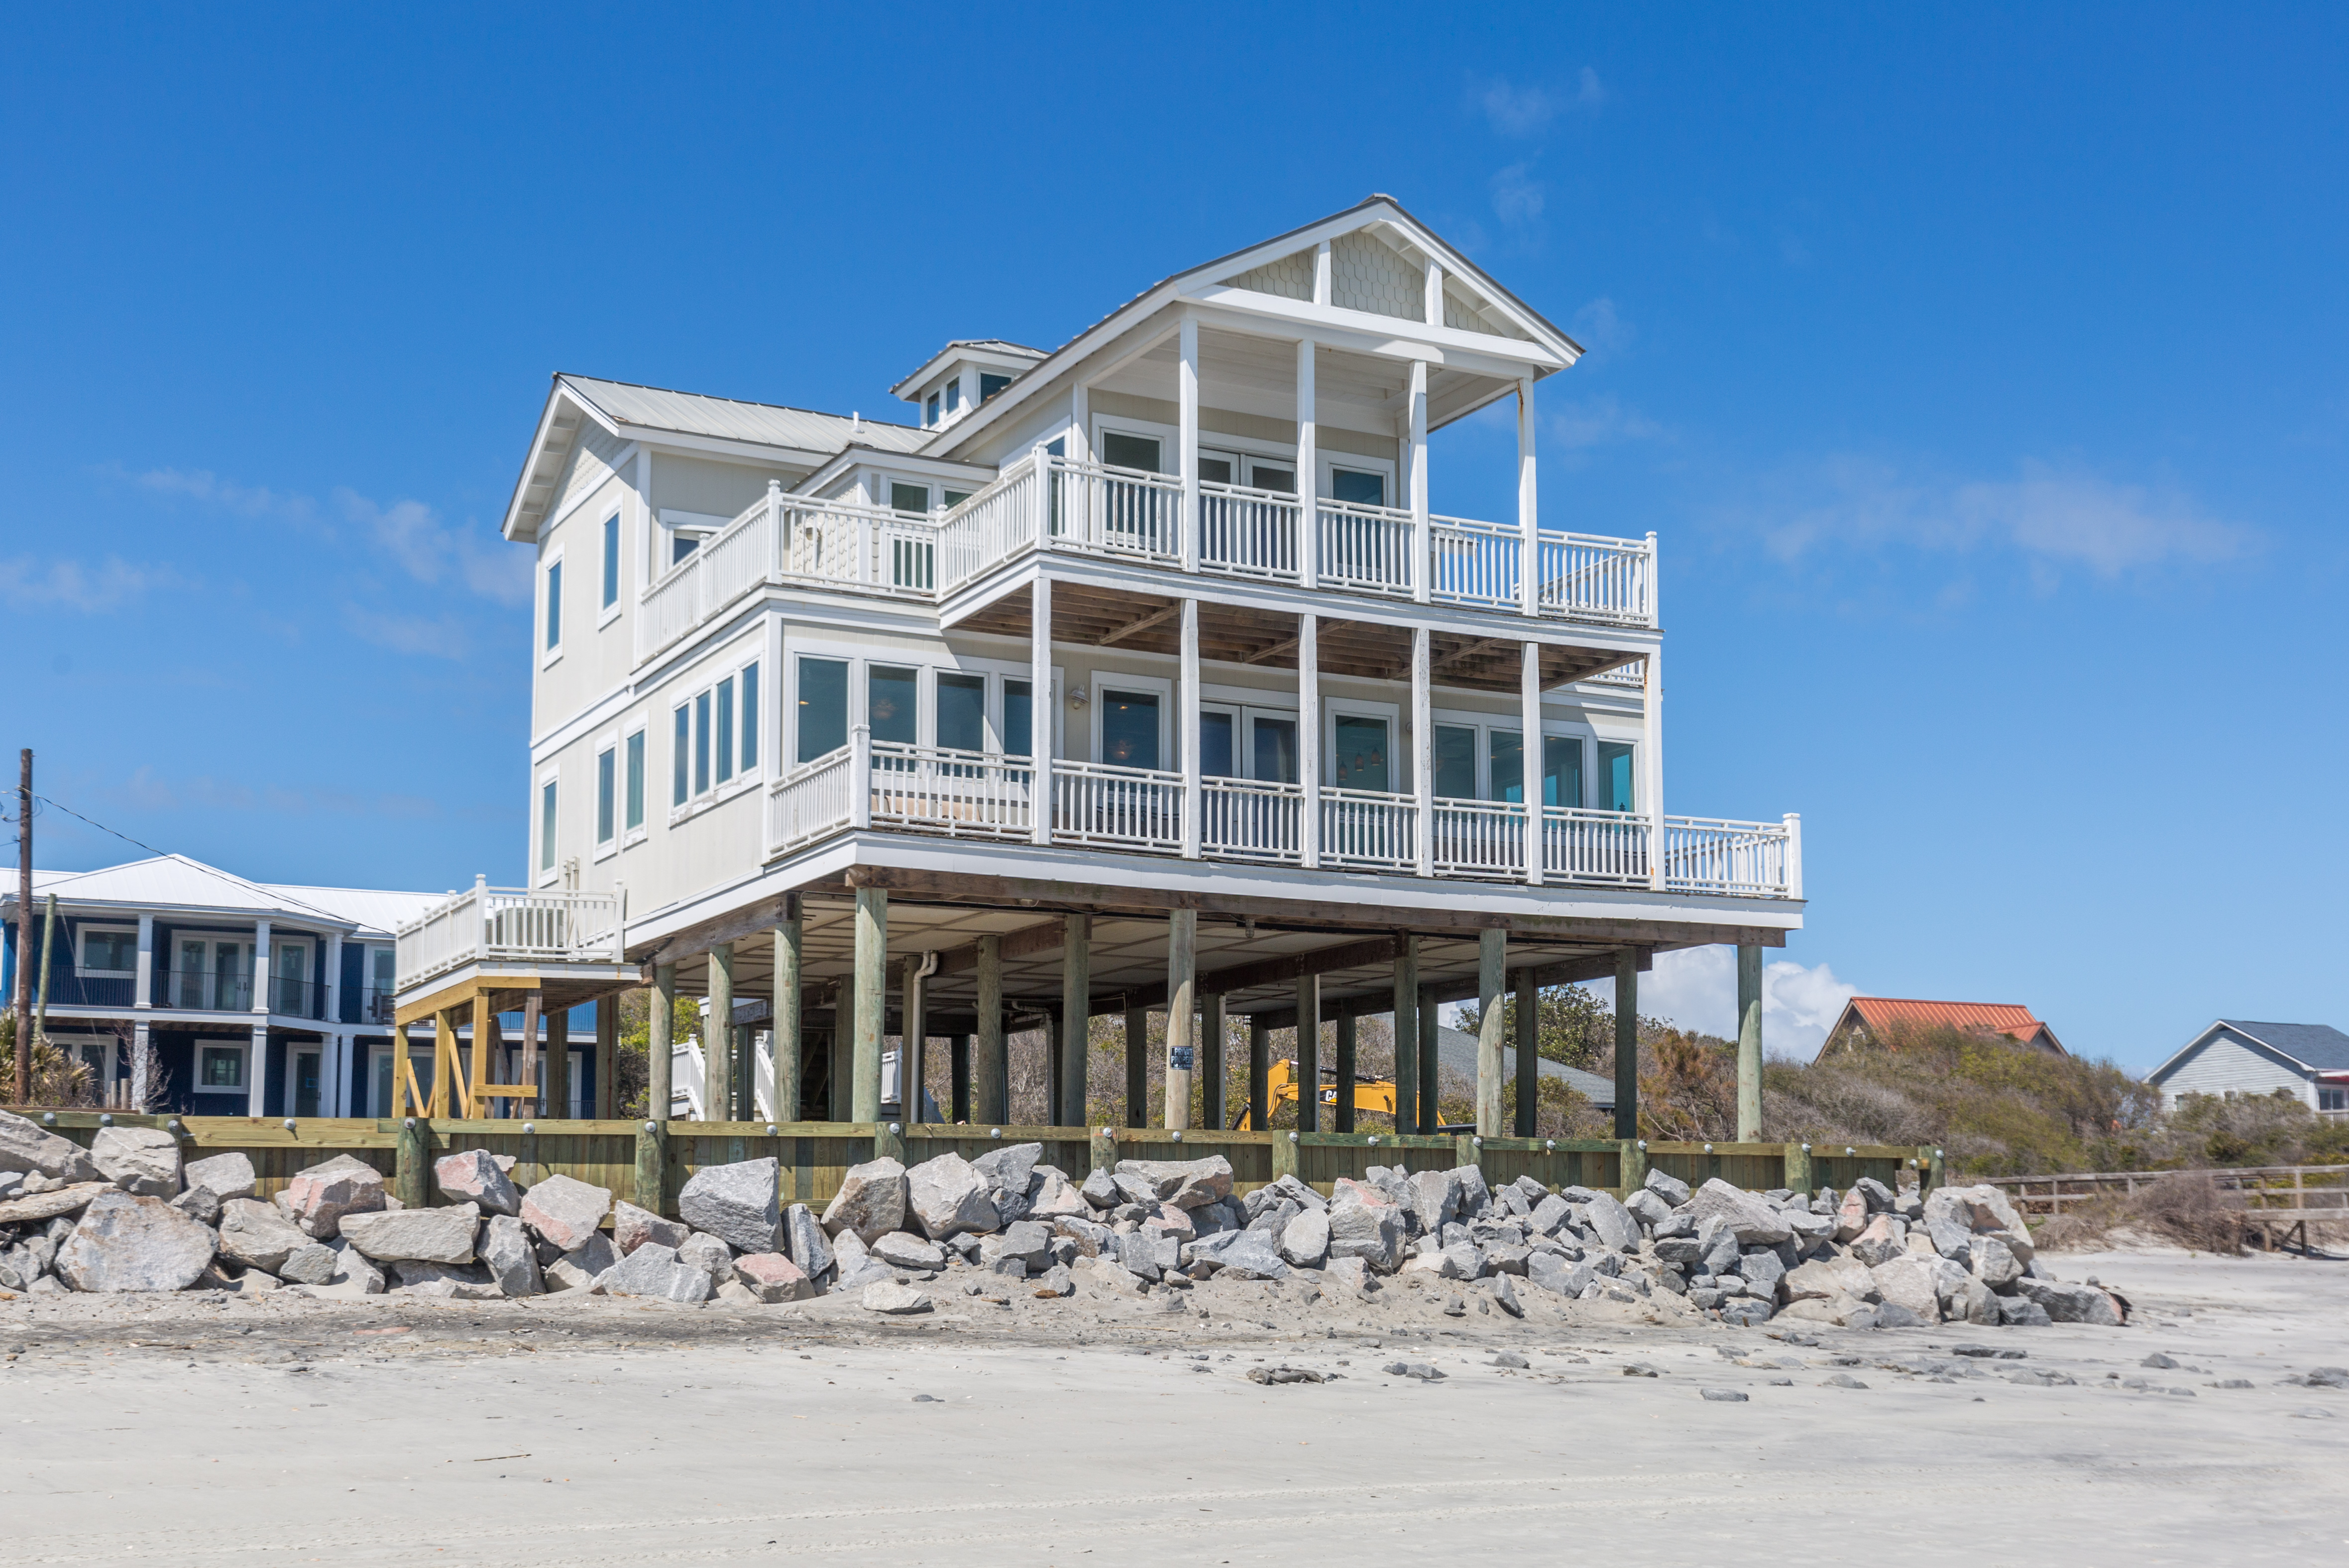 Folly Beach Real Estate Market Report – Mid-Year 2017